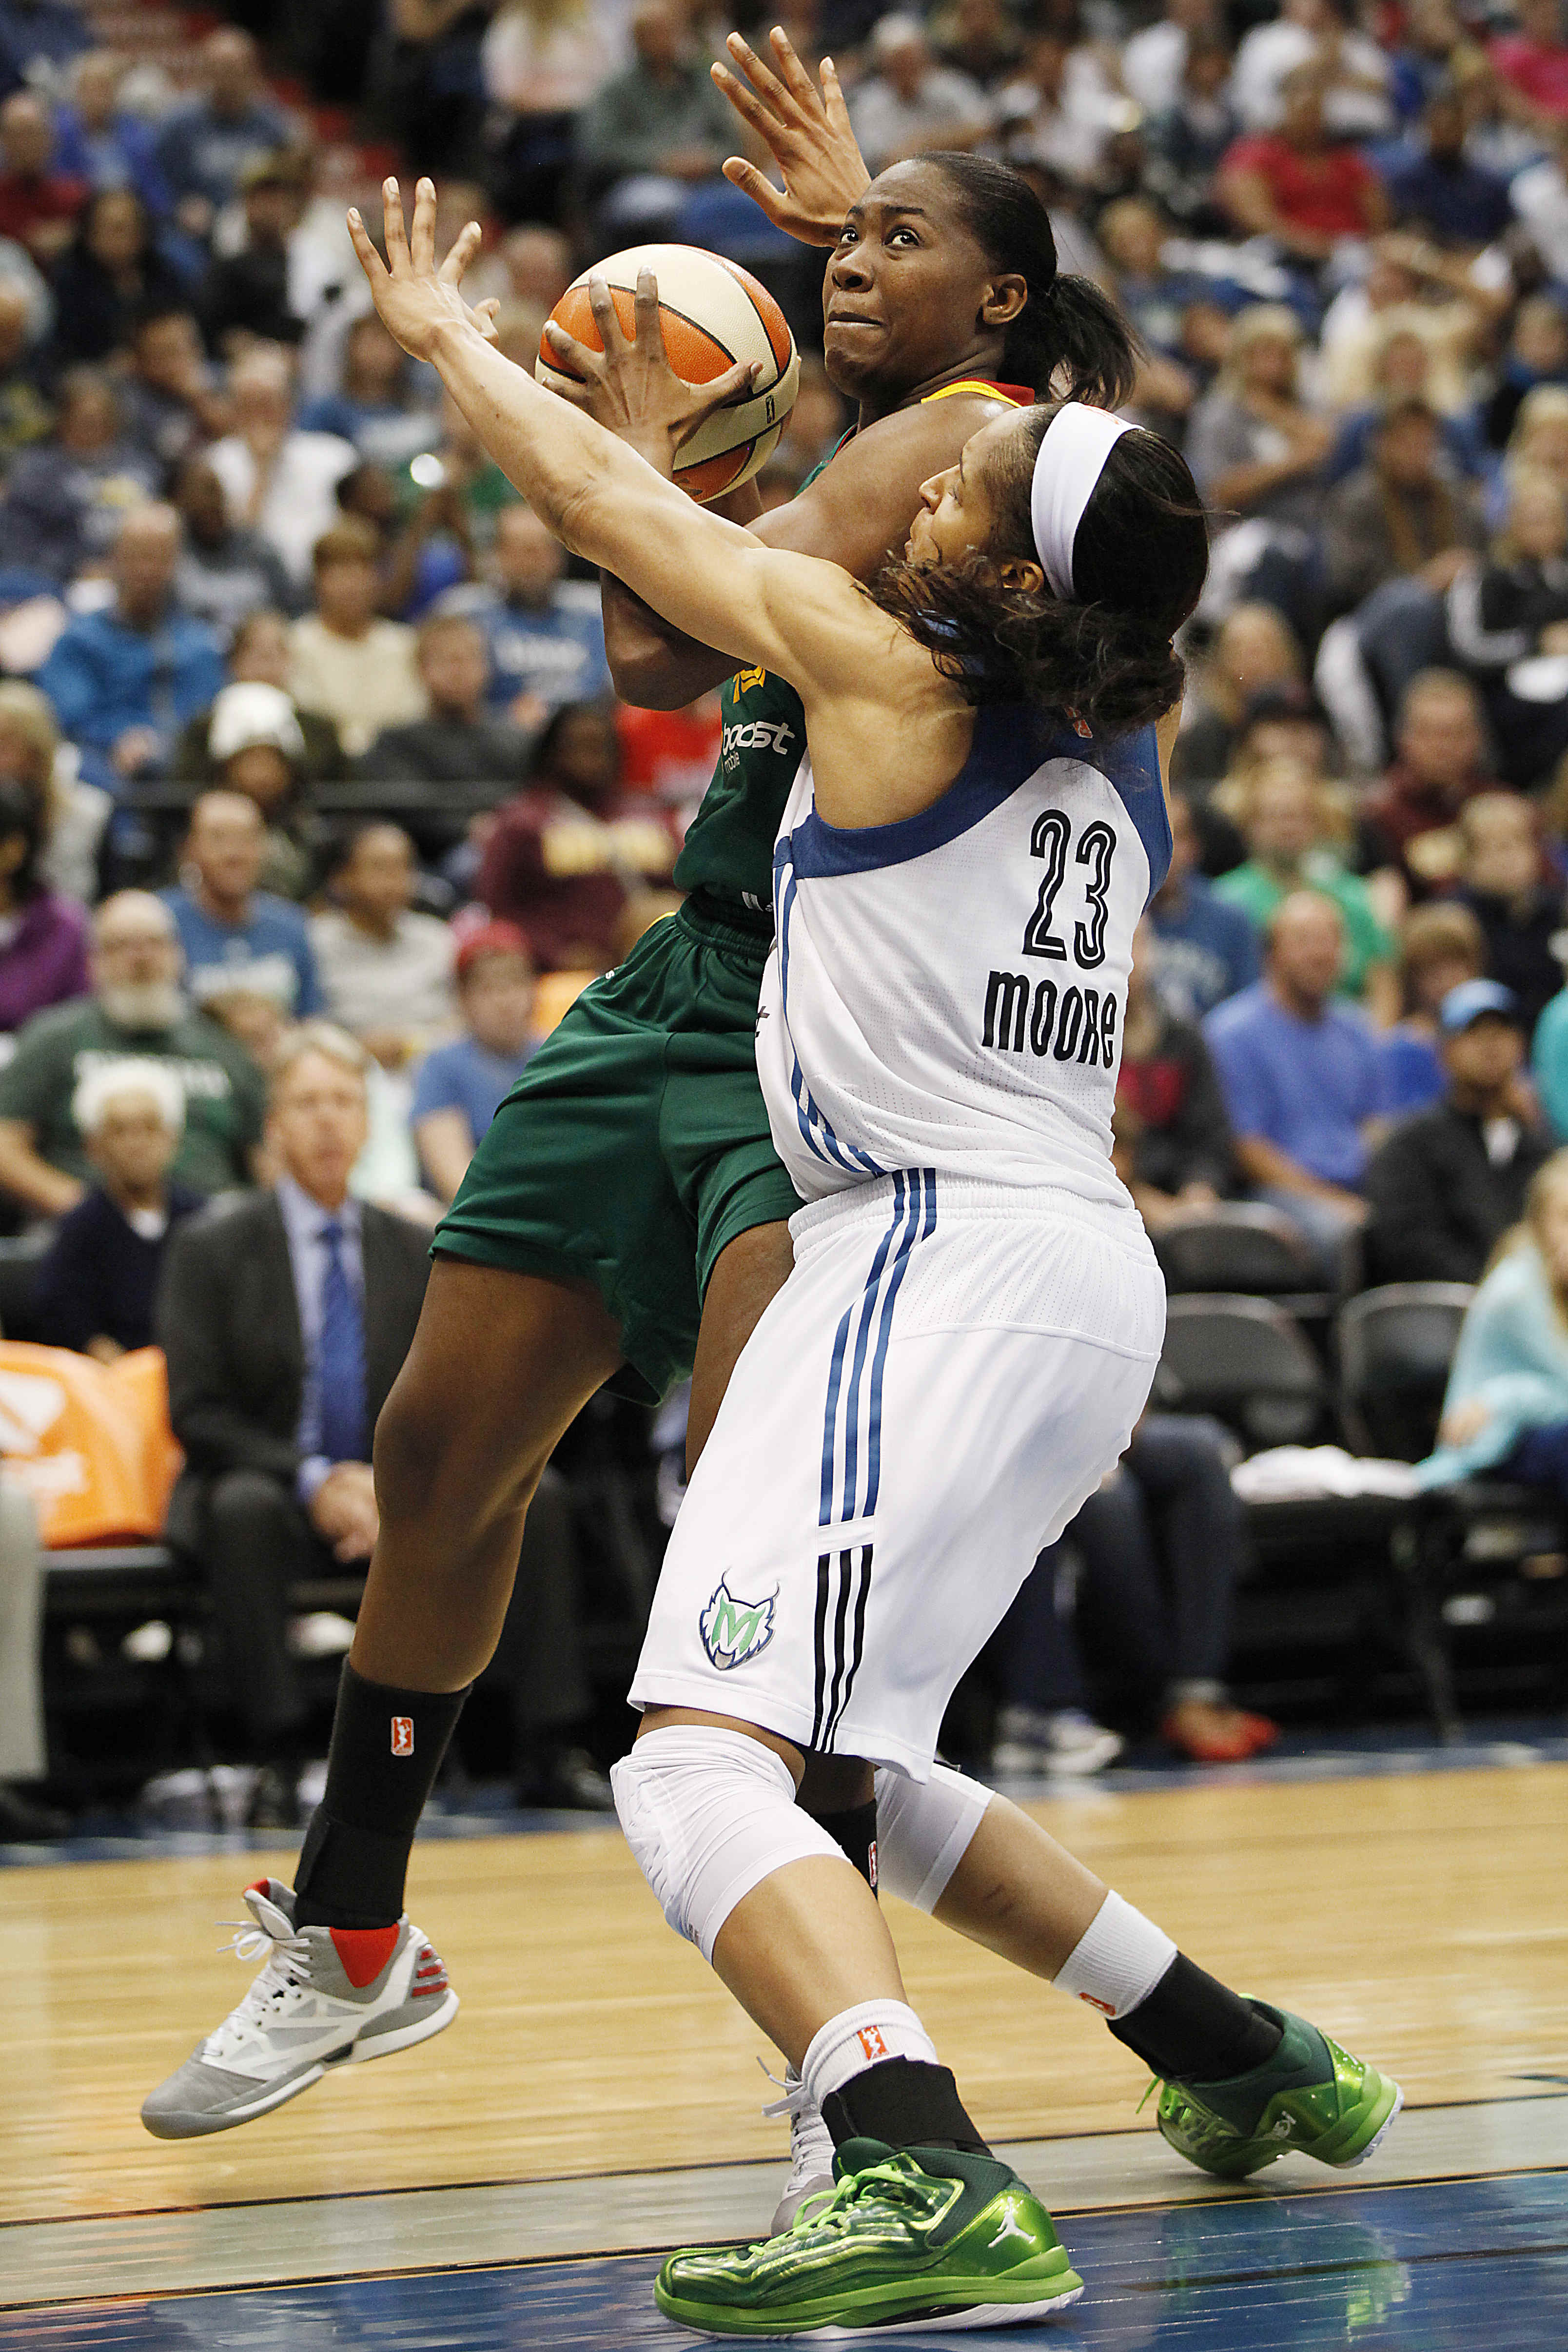 Seattle Storm guard SheKinna Stricklen pushes up to the basket against Minnesota Lynx guard Maya Moore (23) in the opening game of a first-round WNBA basketball playoff series, Friday, Sept. 20, 2013, in Minneapolis. The Lynx won 80-64